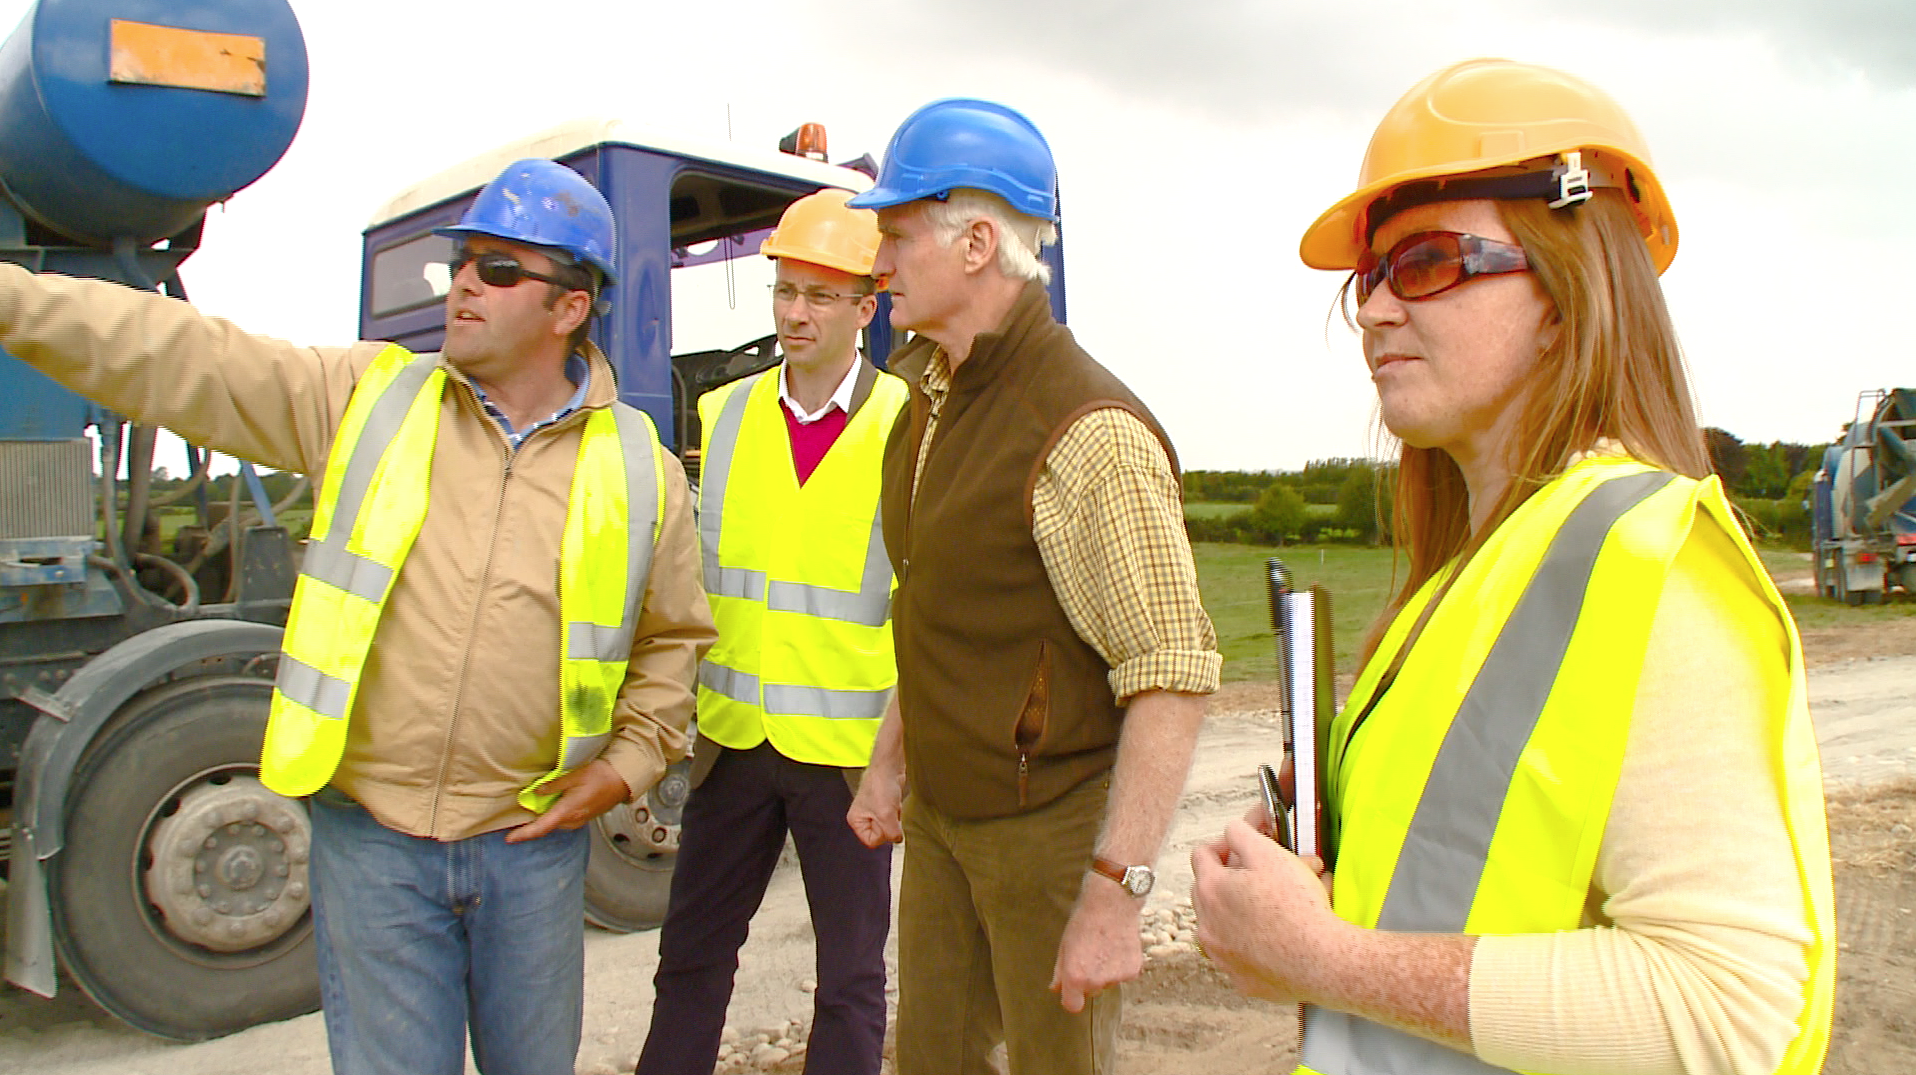 Cathal O'Leary and Tracey Sludds with Architect Duncan Stewart during the filming of About the House at the Holden Passive House in Tullow, Co. Carlow.